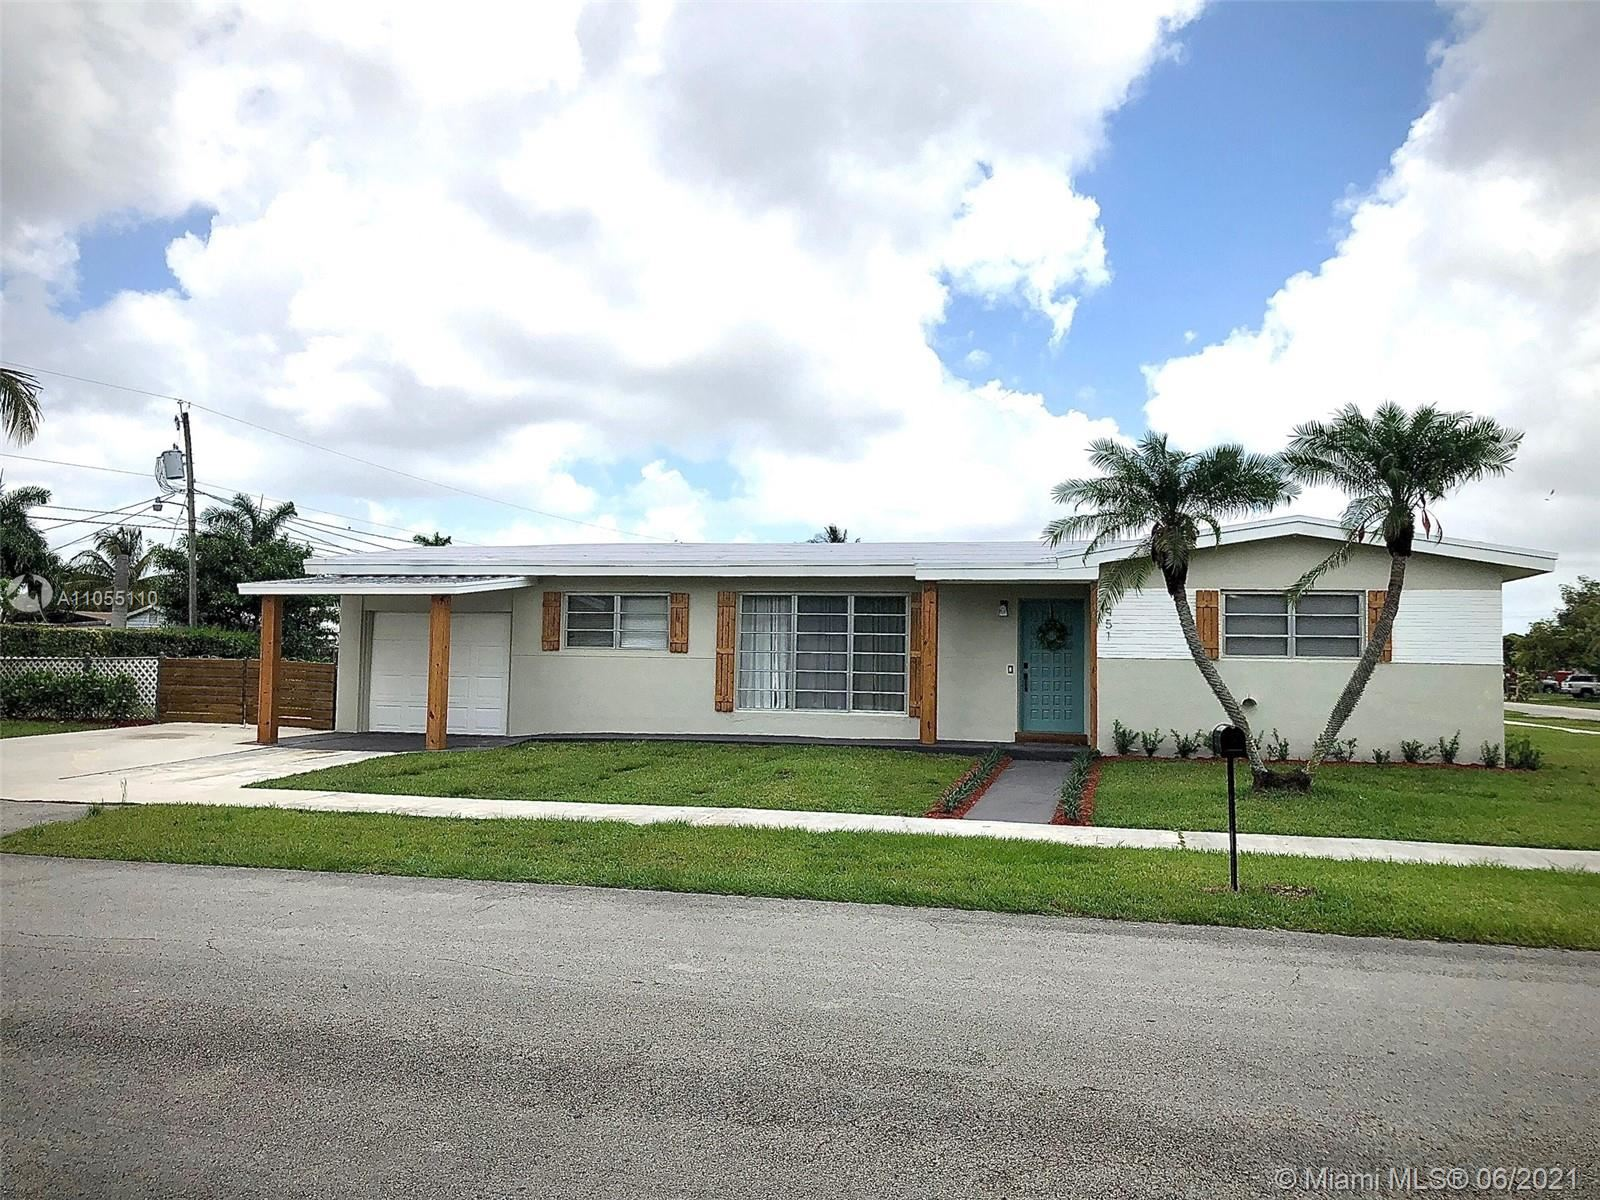 951 NW 16th Ave, Homestead, FL 33030 - #: A11055110